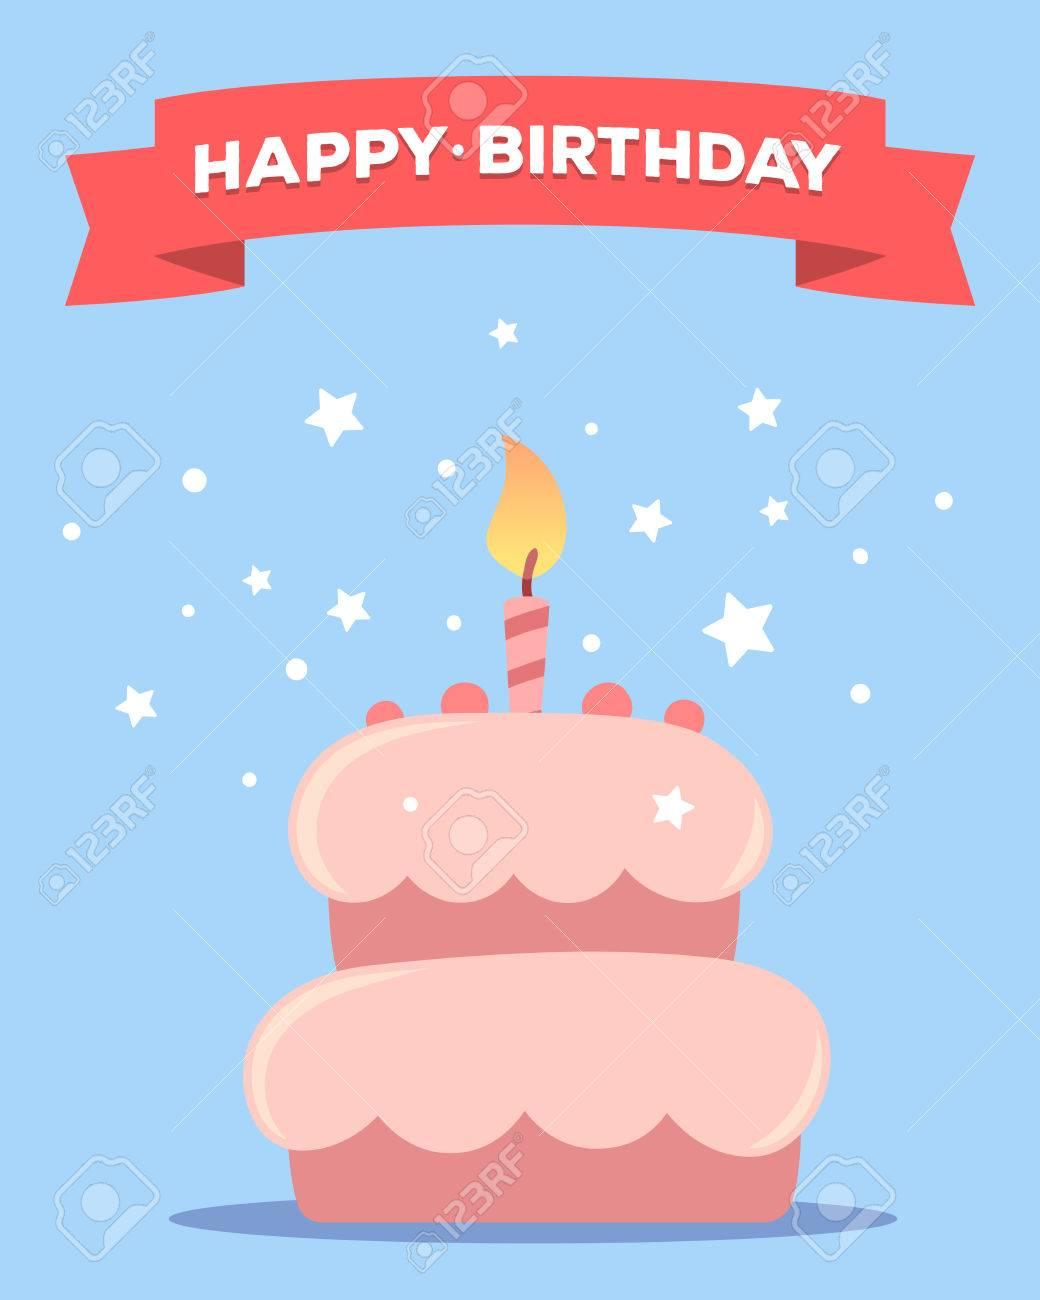 Happy Birthday Template Poster With Pink Cake One Candle Red Ribbon